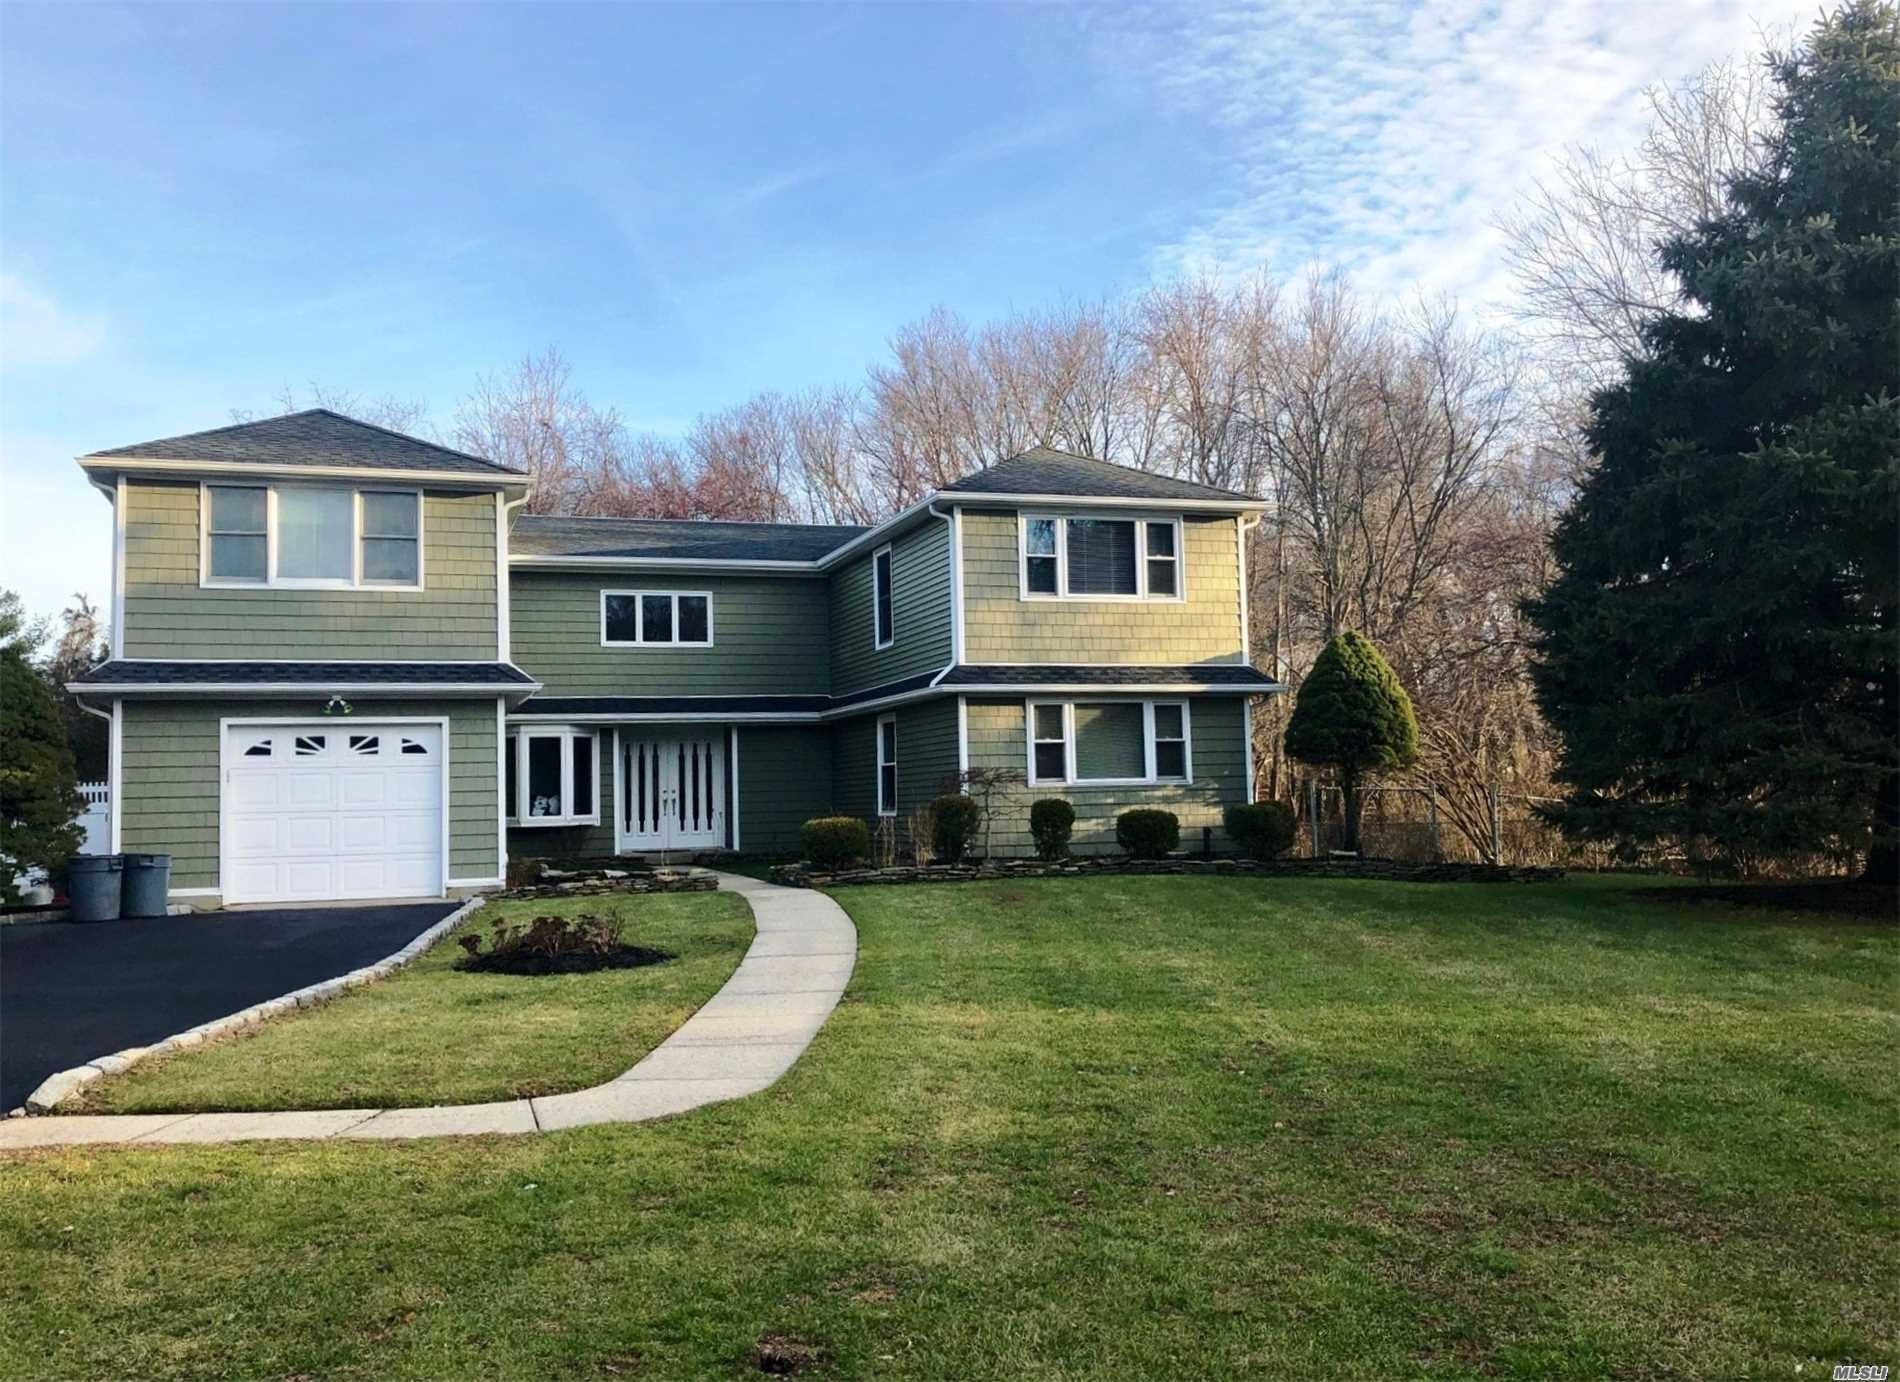 Custom Mint ++ Colonial: Open Floor Plan, Gourmet Kitchen W/ Granite And Stainless Appliances, Great Room, Spacious 5 Bedrooms, 3 Full Baths, Plenty Of Storage Closets, Cul-De-Sac. Private Yard Backing The Greenbelt. Smithtown West School.